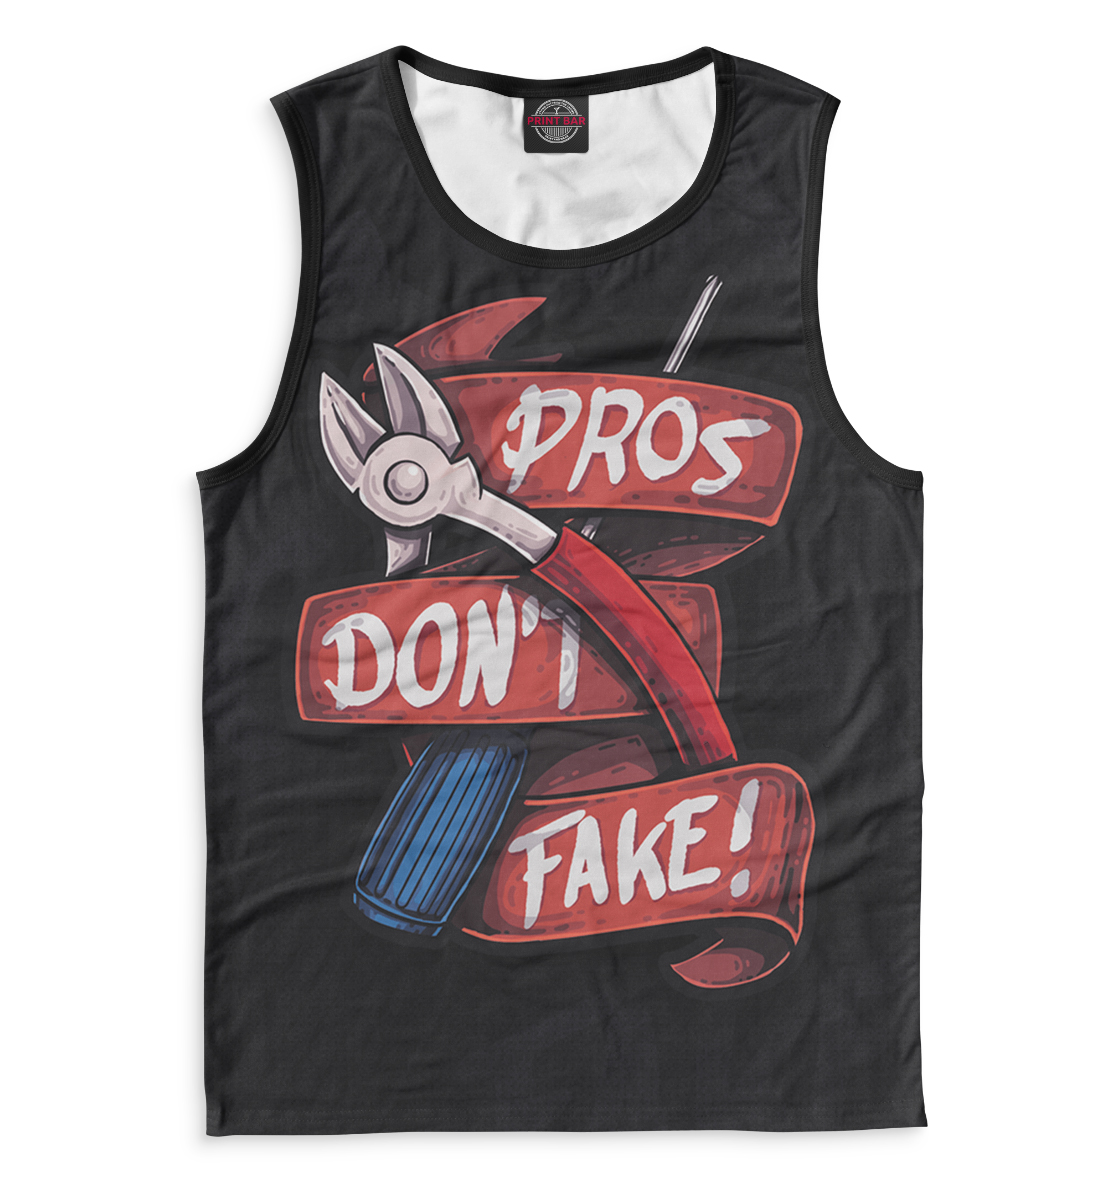 Pros Don't Fake